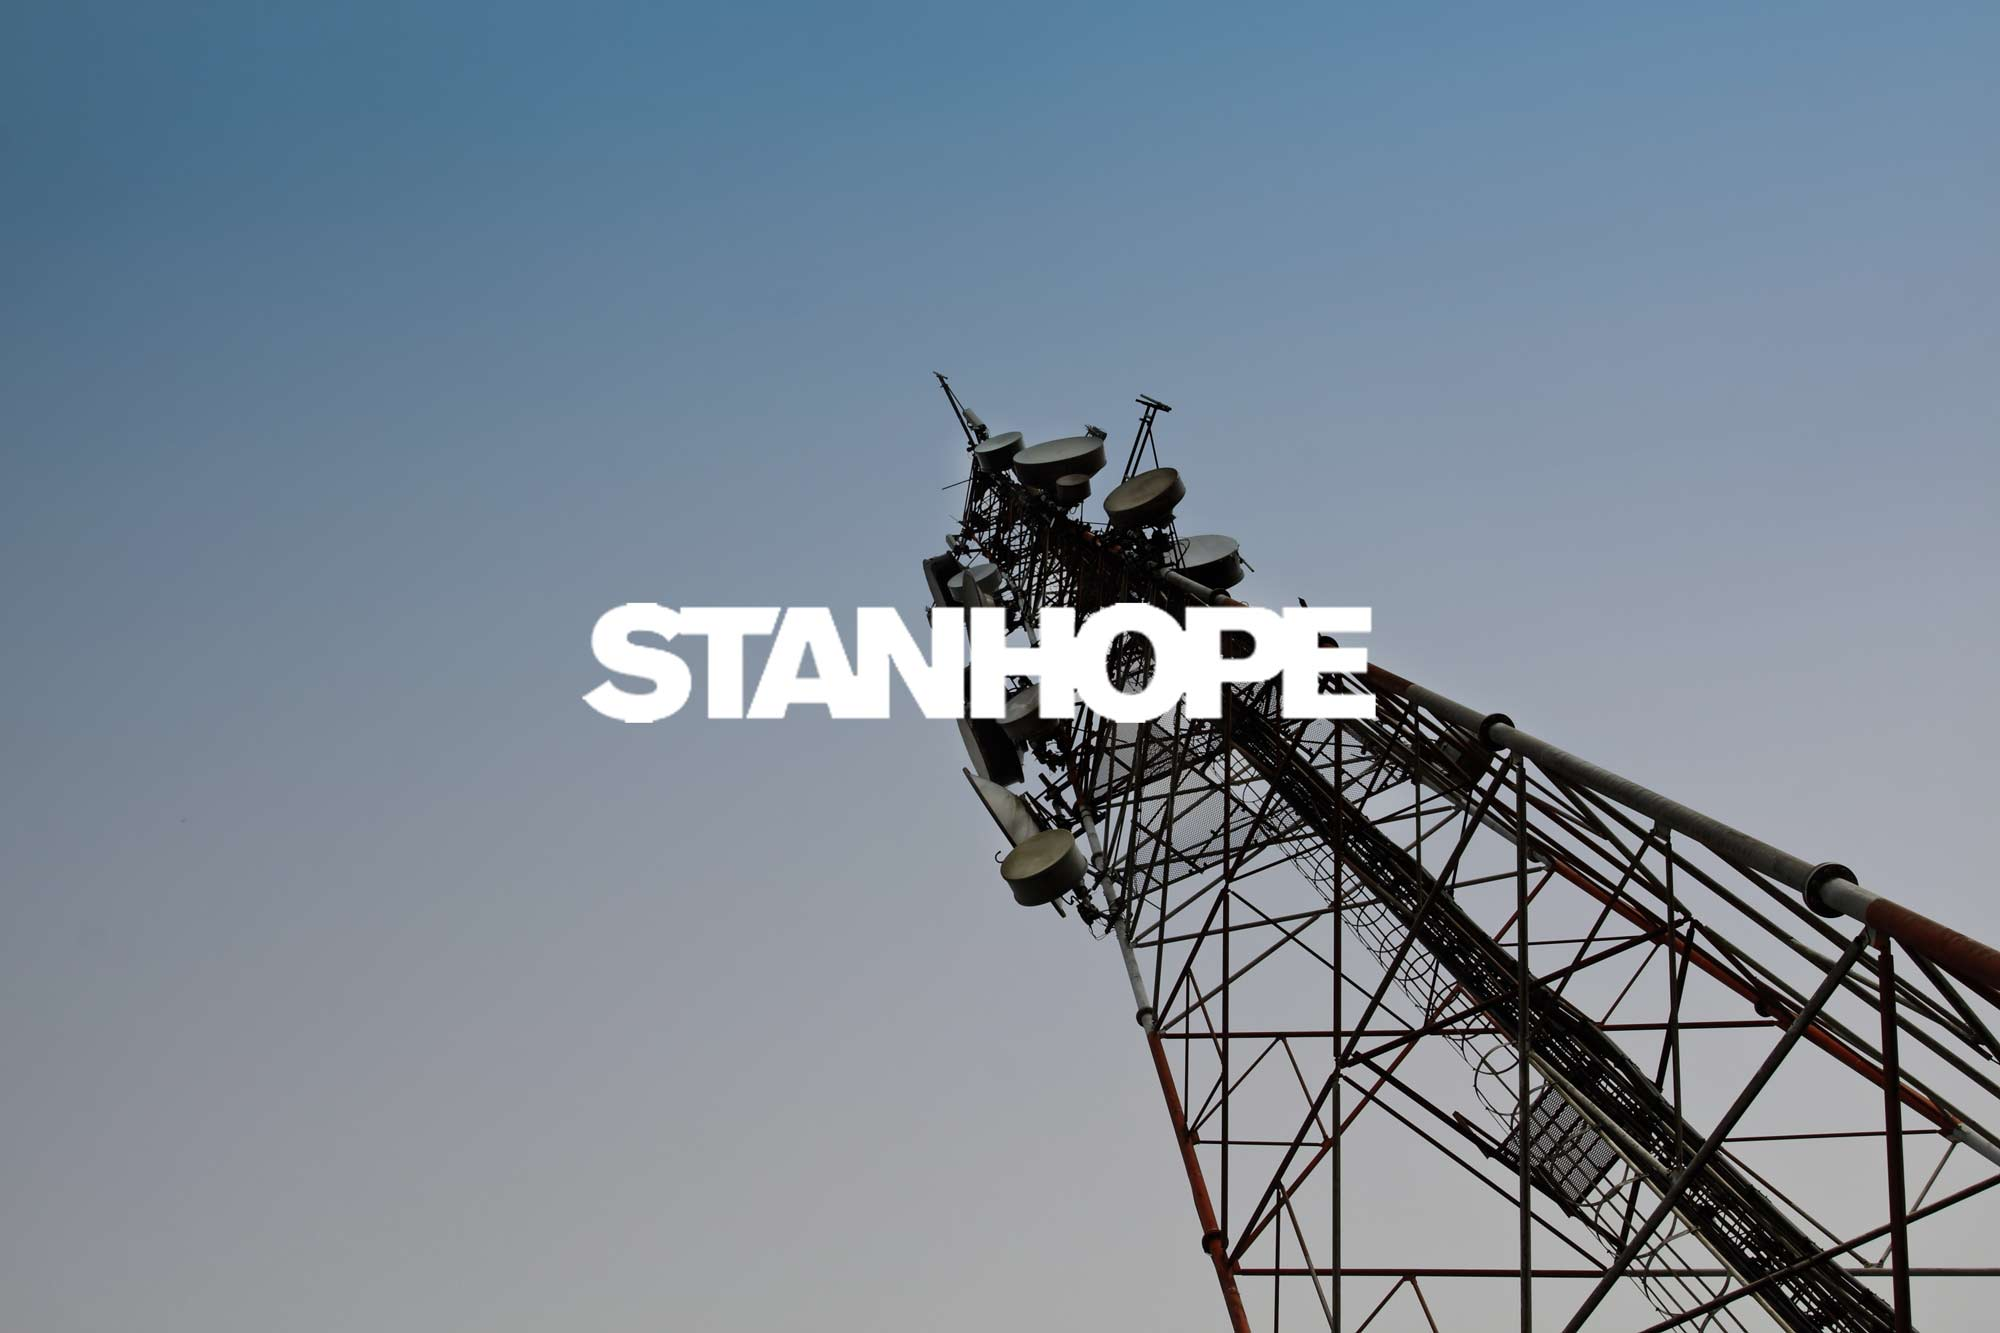 Concero Complete Radio Signal Survey for Stanhope PLC